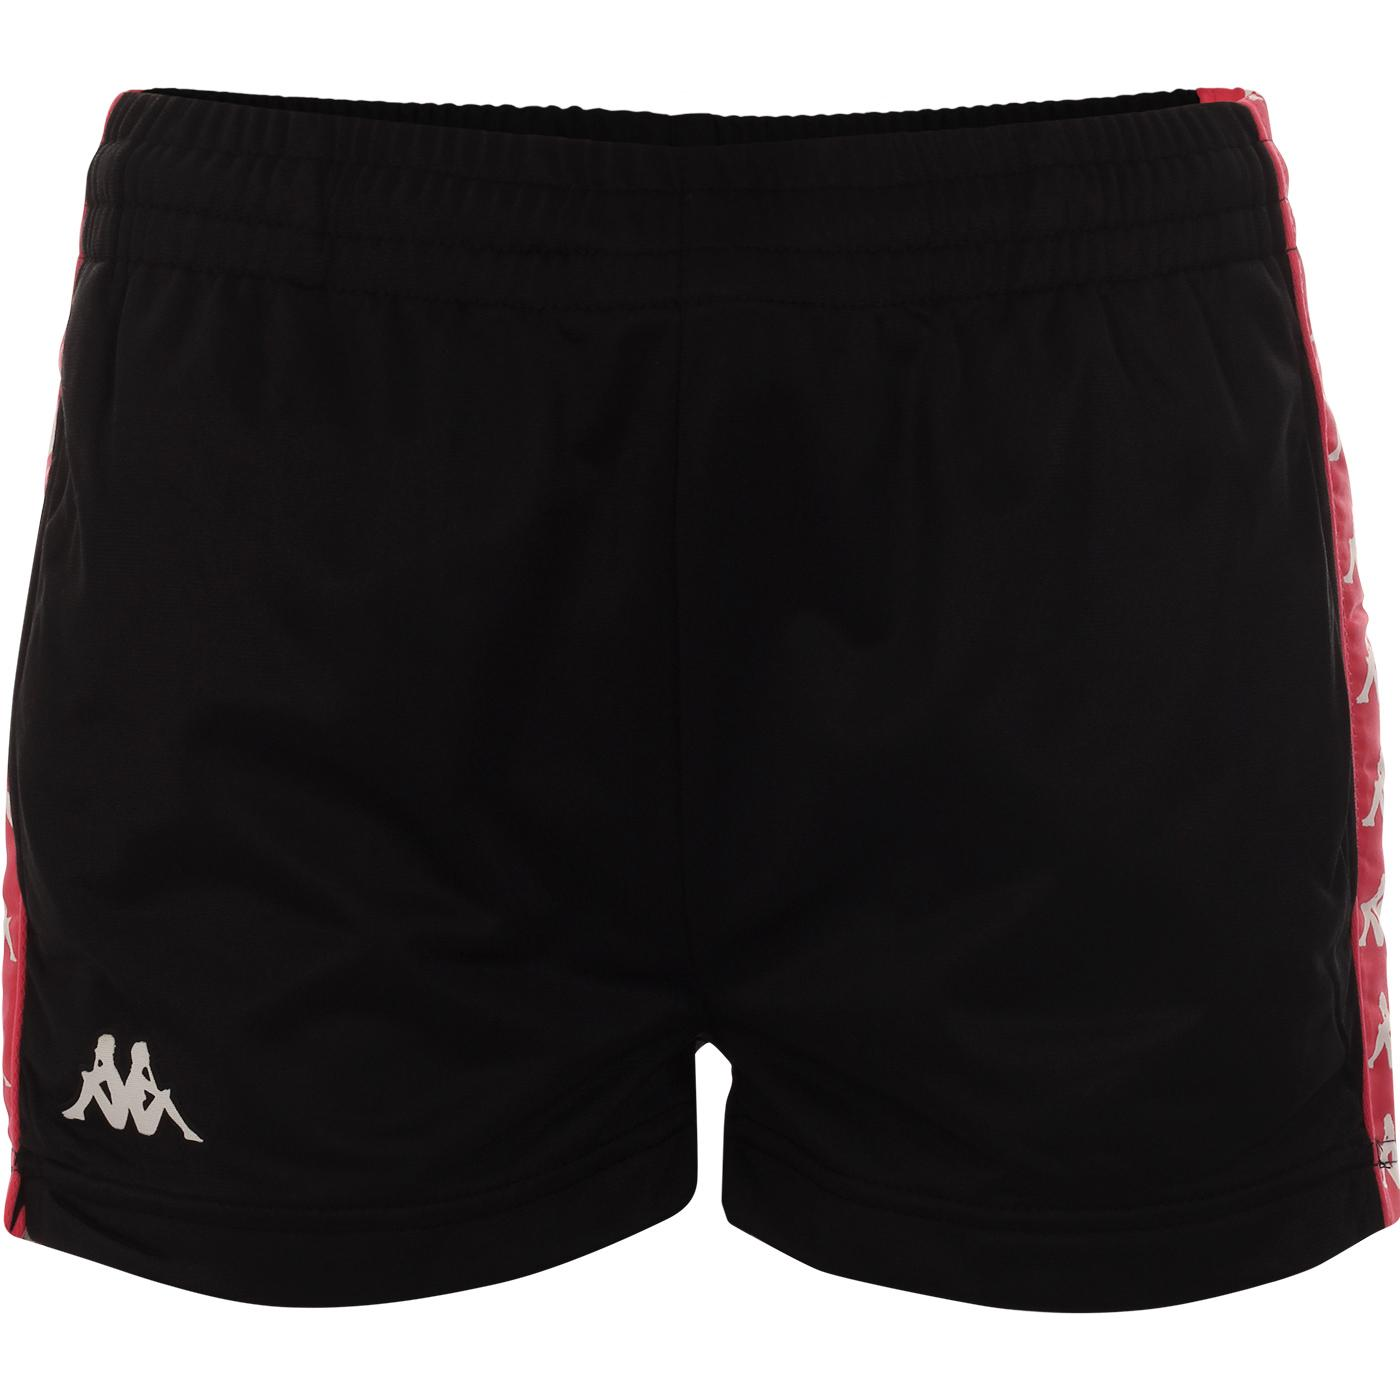 304S7L0 A0S lady threat 222 banda shorts blk/red